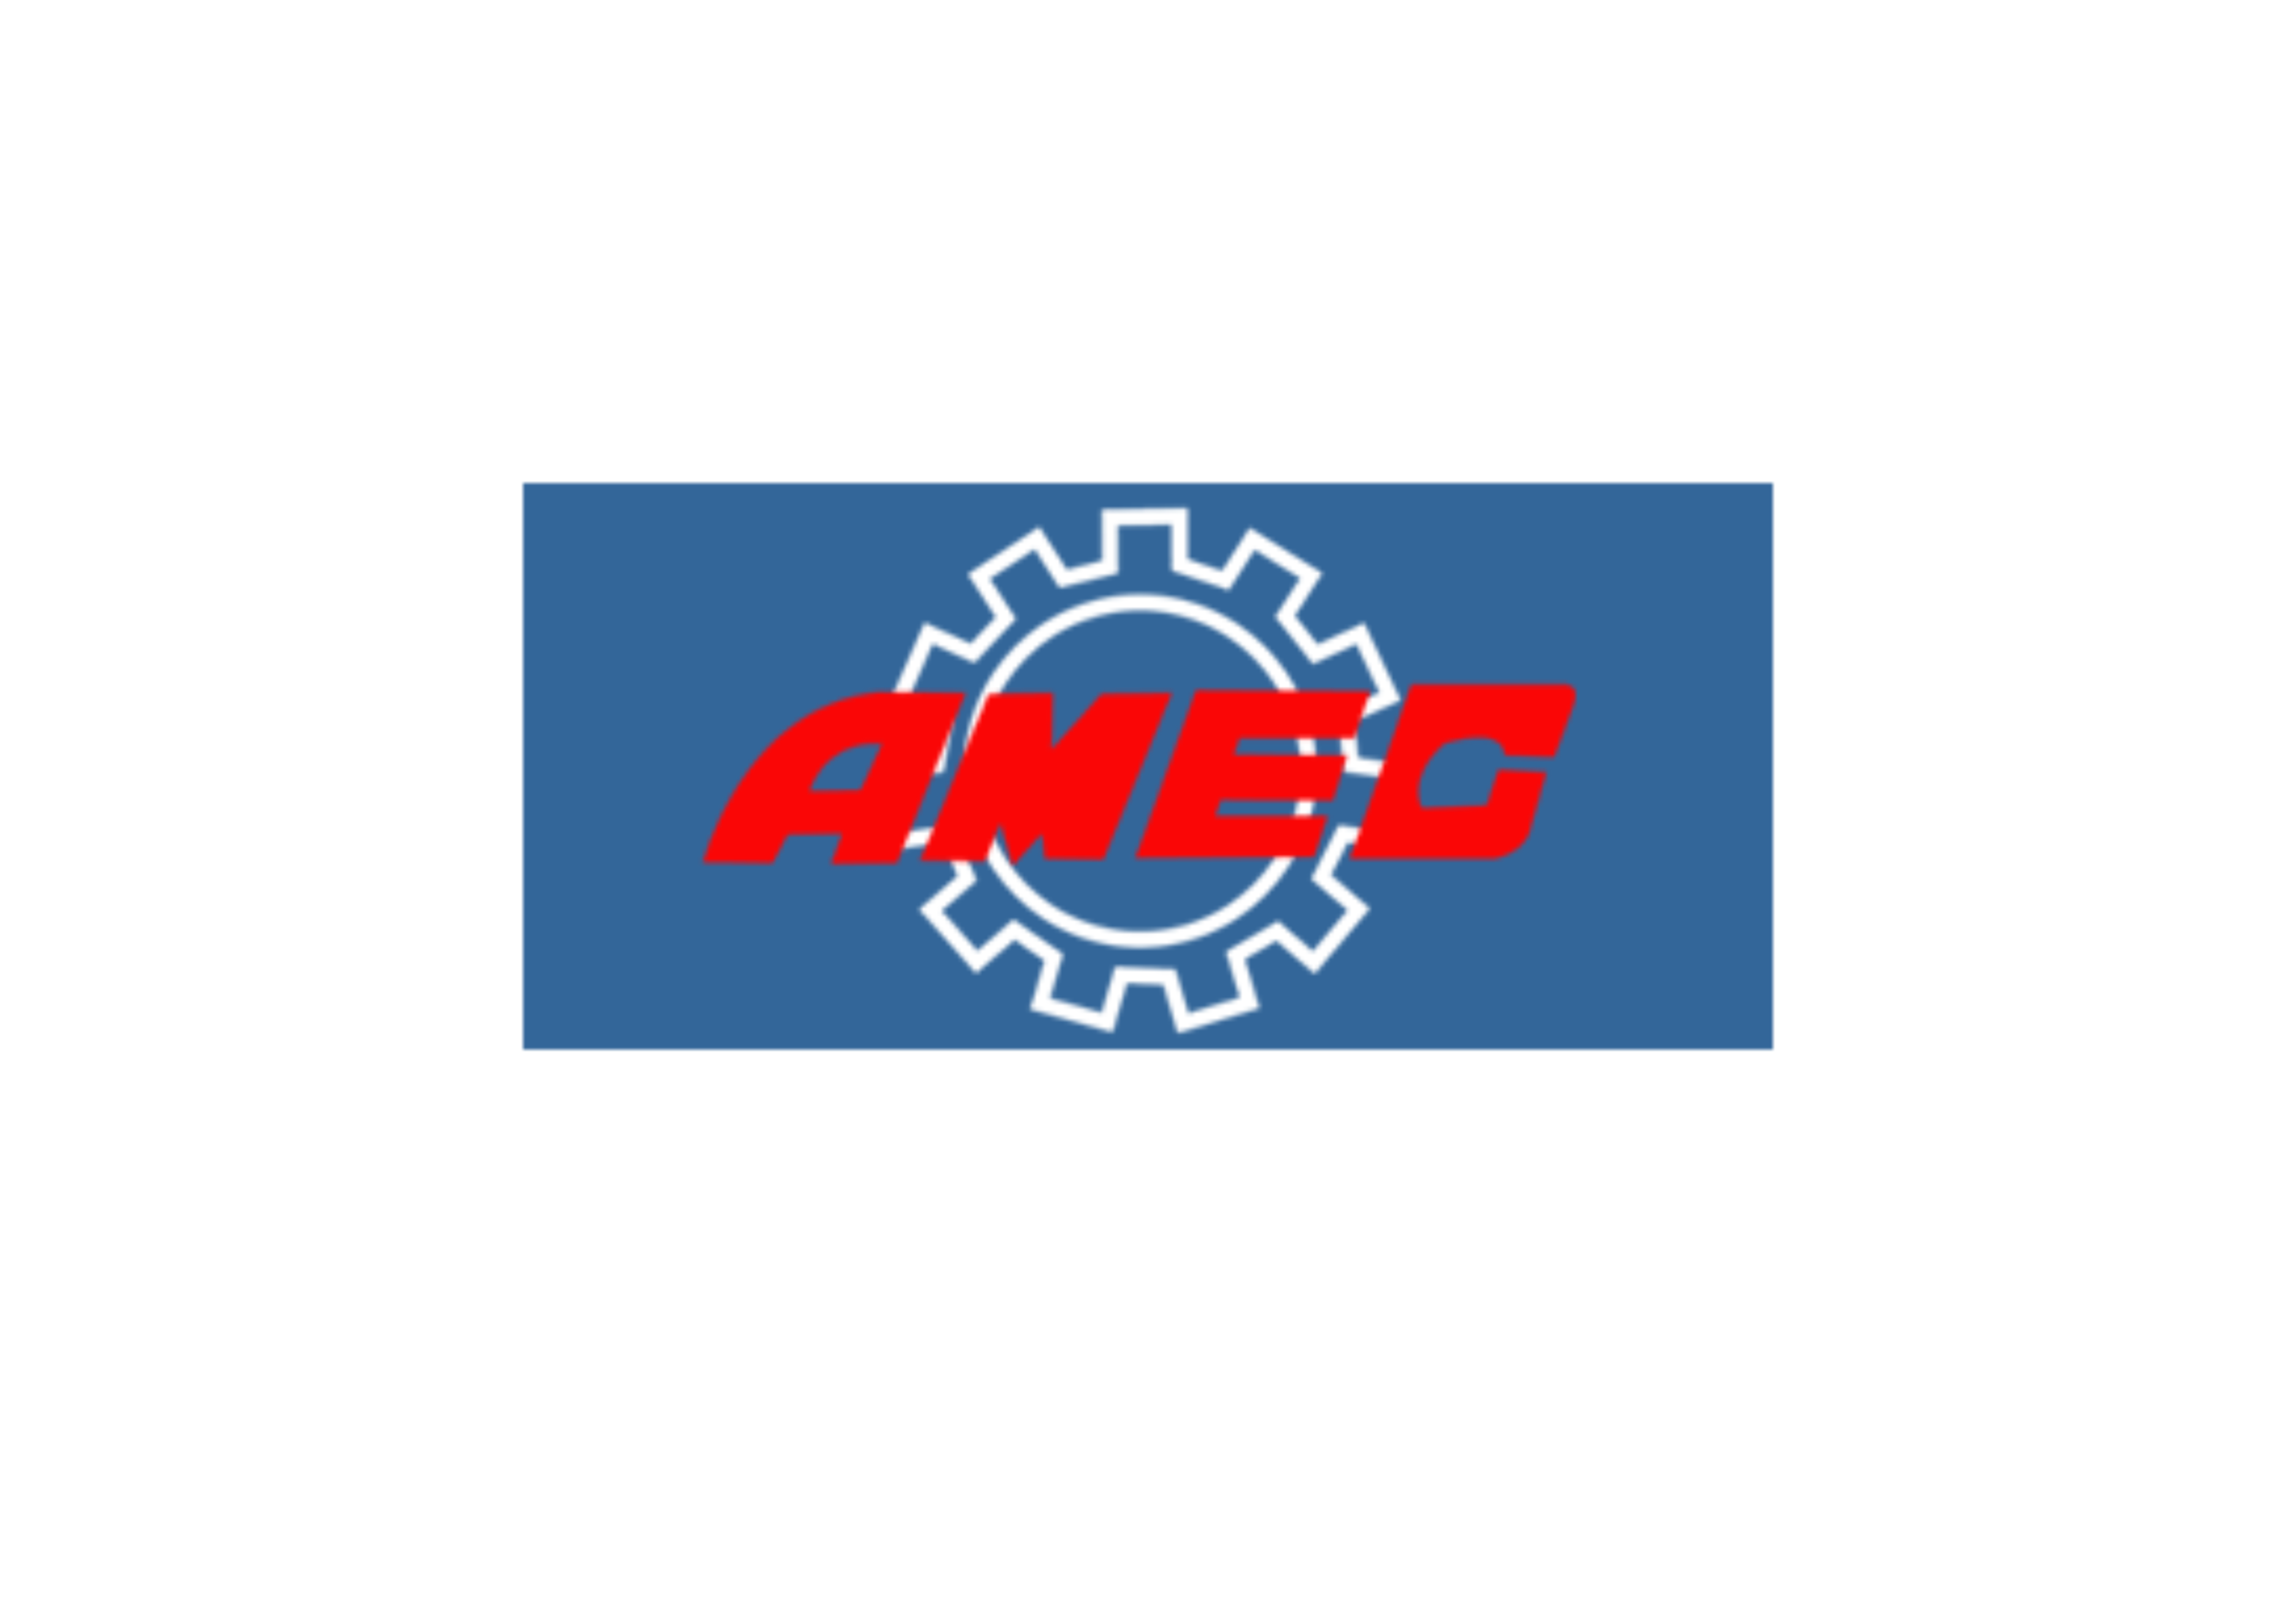 AMEC - AMEC Industries is a major importer of roller, agricultural, and engineering class chain. They also provide a large variety of power transmission parts including: sprockets, conveyors, sheaves, and bearings.Chain: roller chain, conveyor chain, leaf chain, time speed chain, escalator chain, agricultural chain, anti-rust high guard chain- Reasons to choose: We chose AMEC because of their excellent delivery, very reliable, and high quality import items.